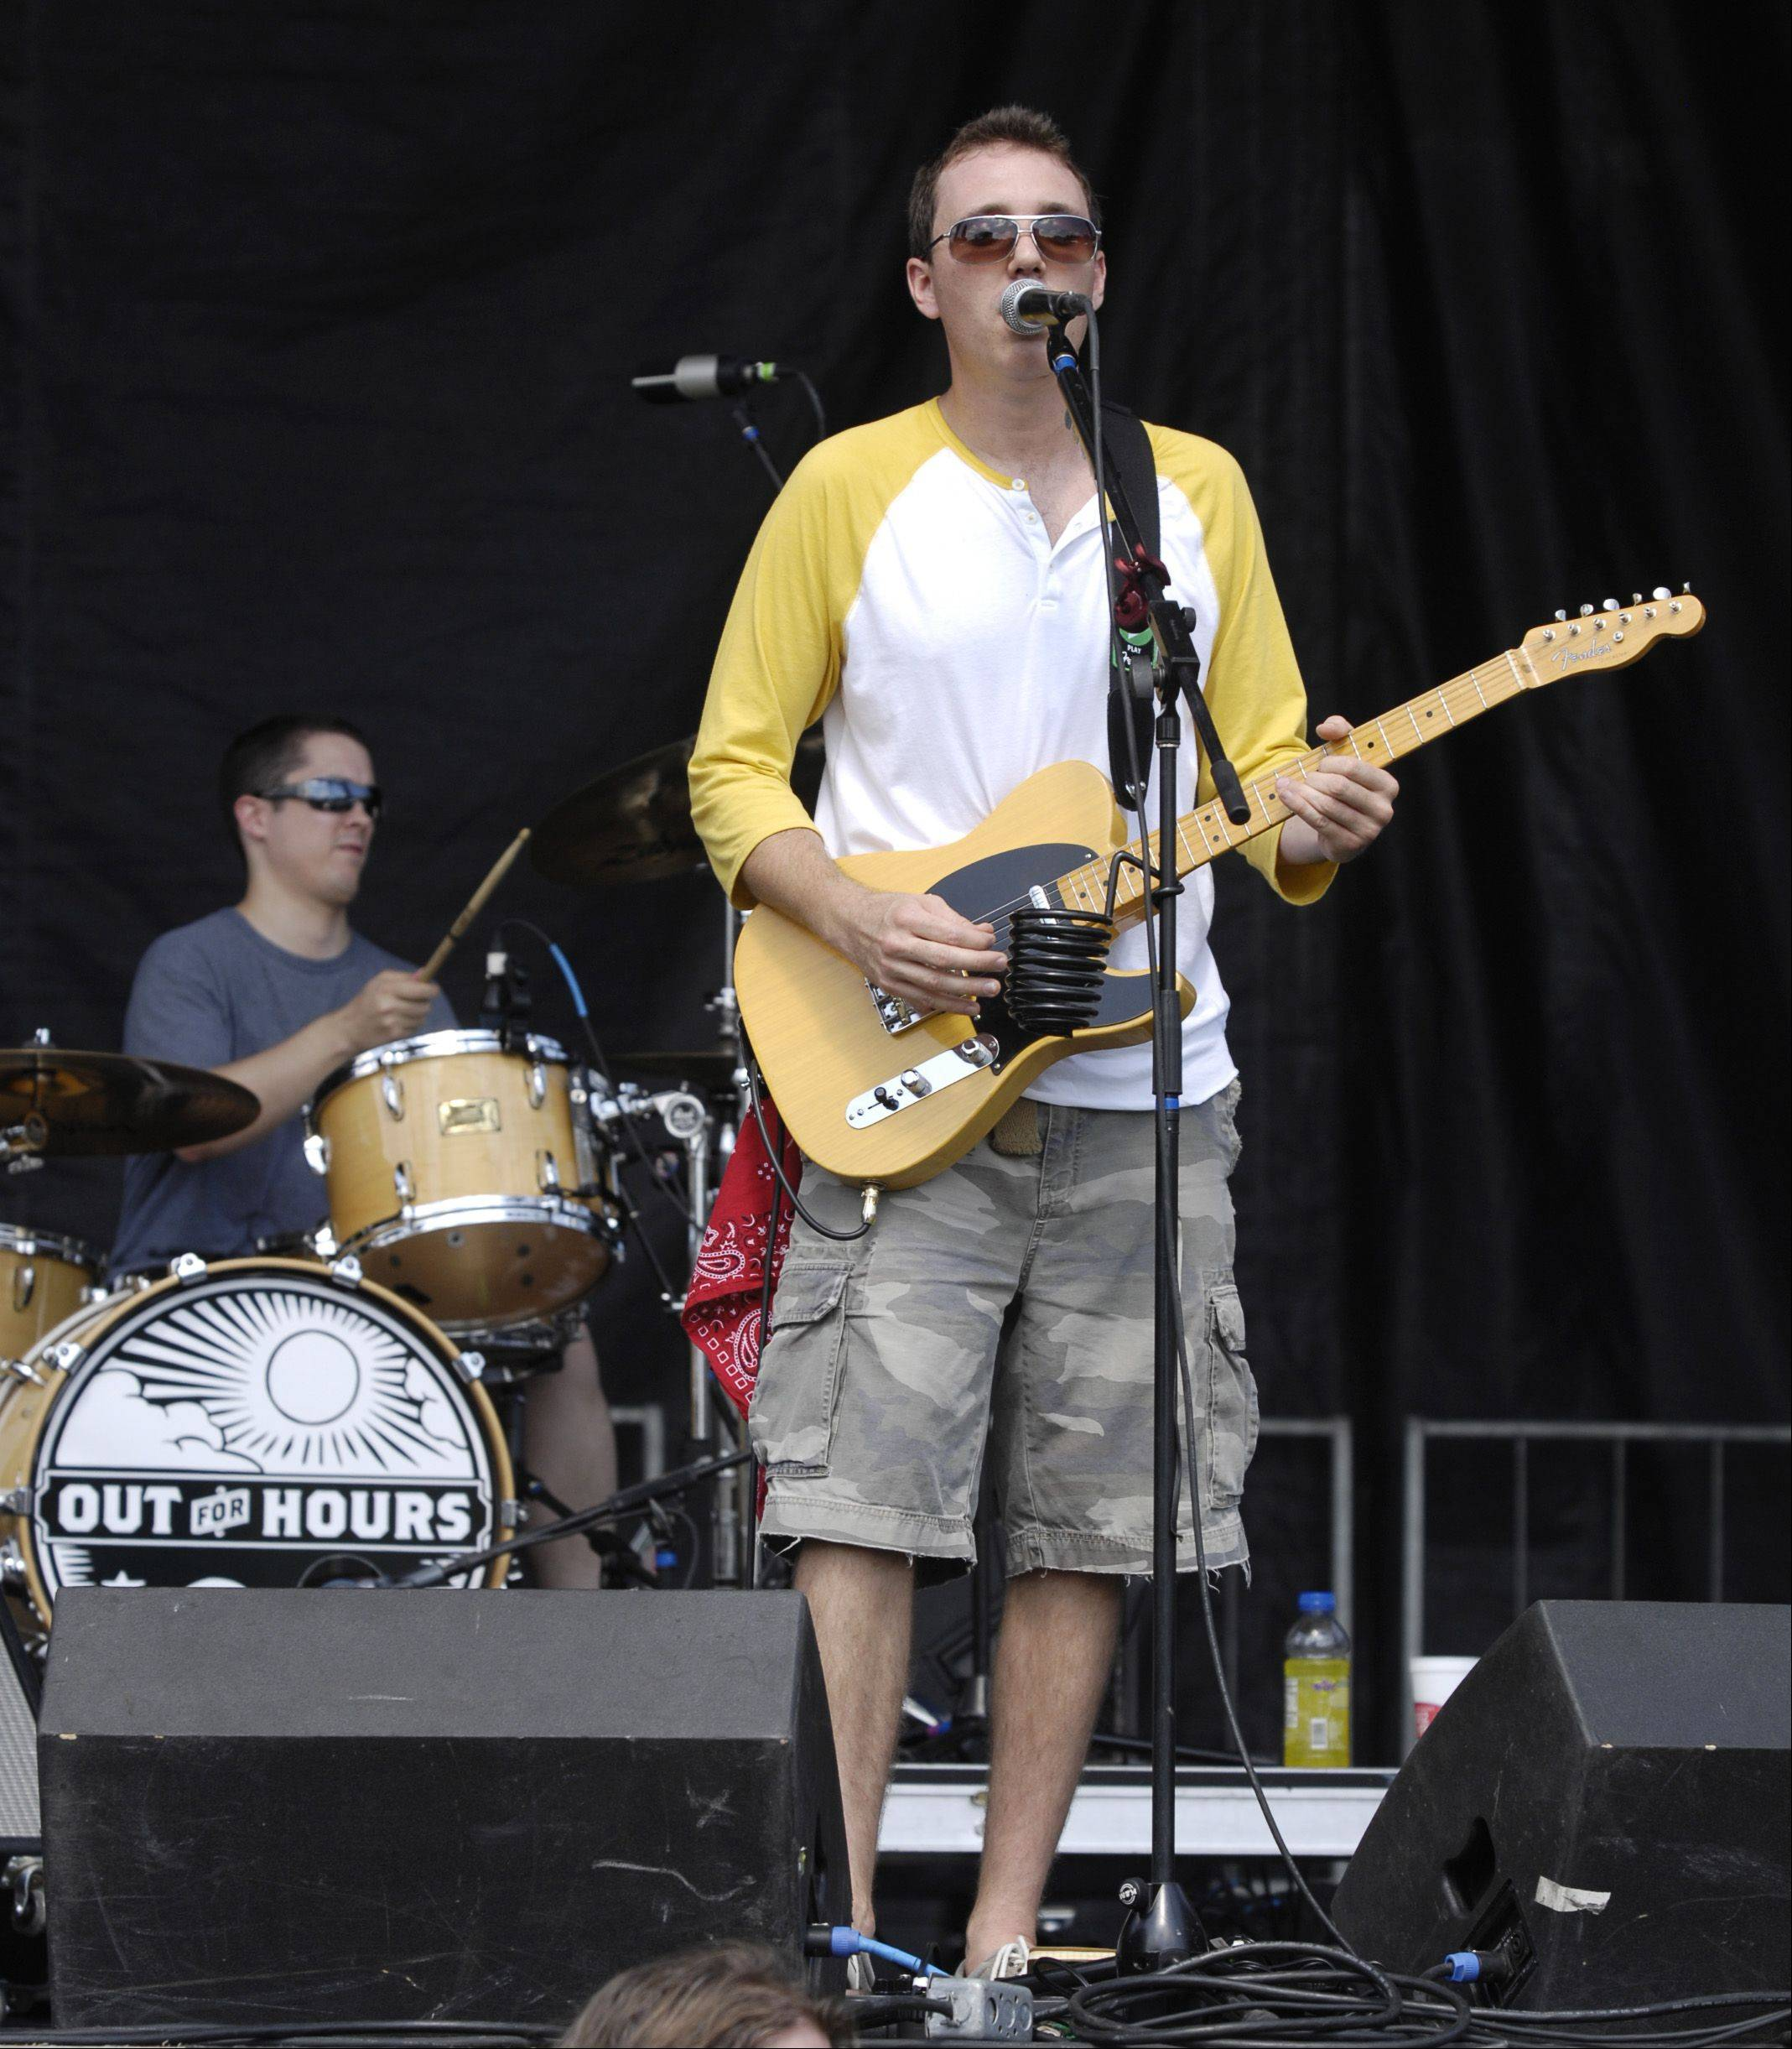 """Out For Hours"" performs on the main stage during the last day of the annual Last Fling festival in Naperville on Monday."